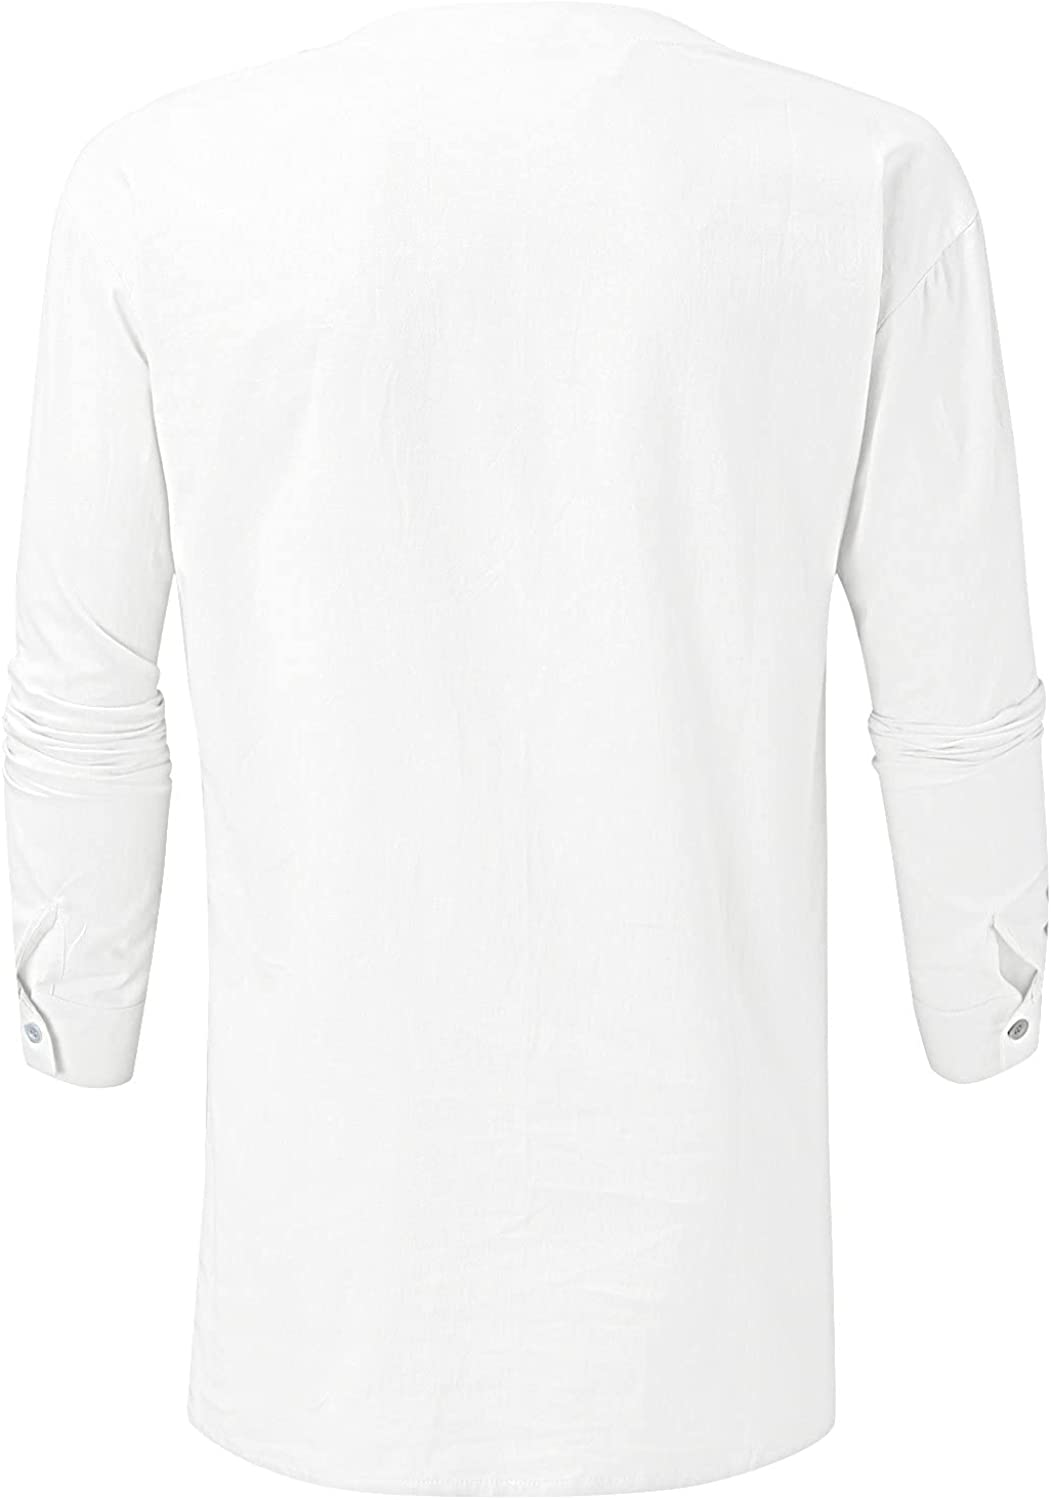 WOCACHI Lace-up Long Sleeve Shirts For Mens, Fall Henley Drawstring V Neck Loose Fit Tee Shirt Casual Solid Tops